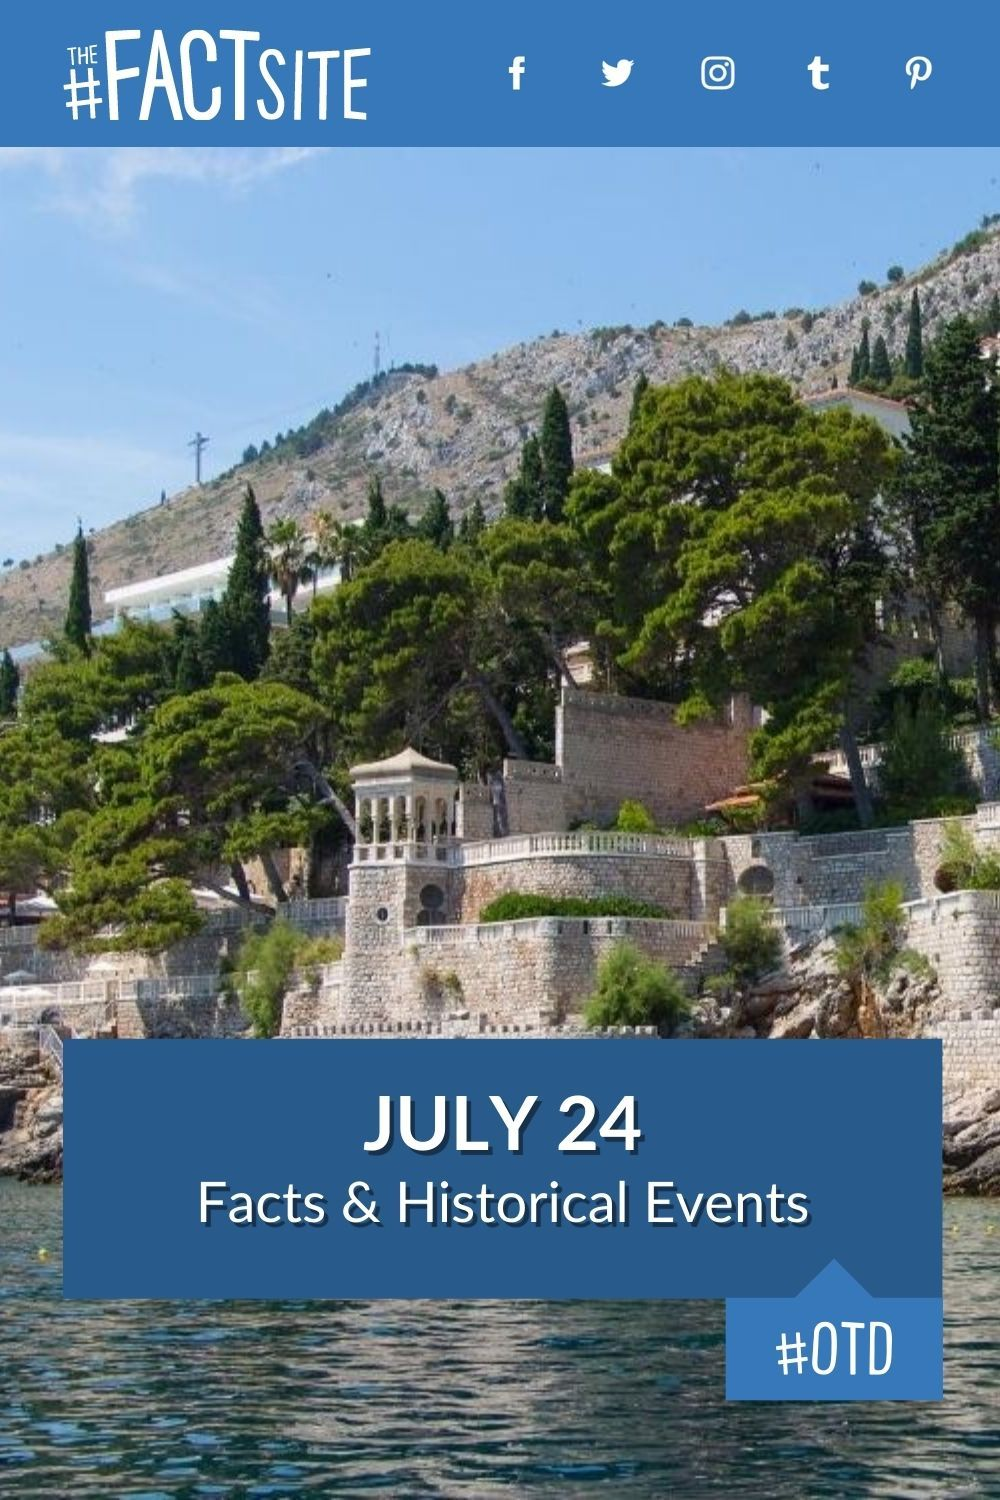 Facts & Historic Events That Happened on July 24